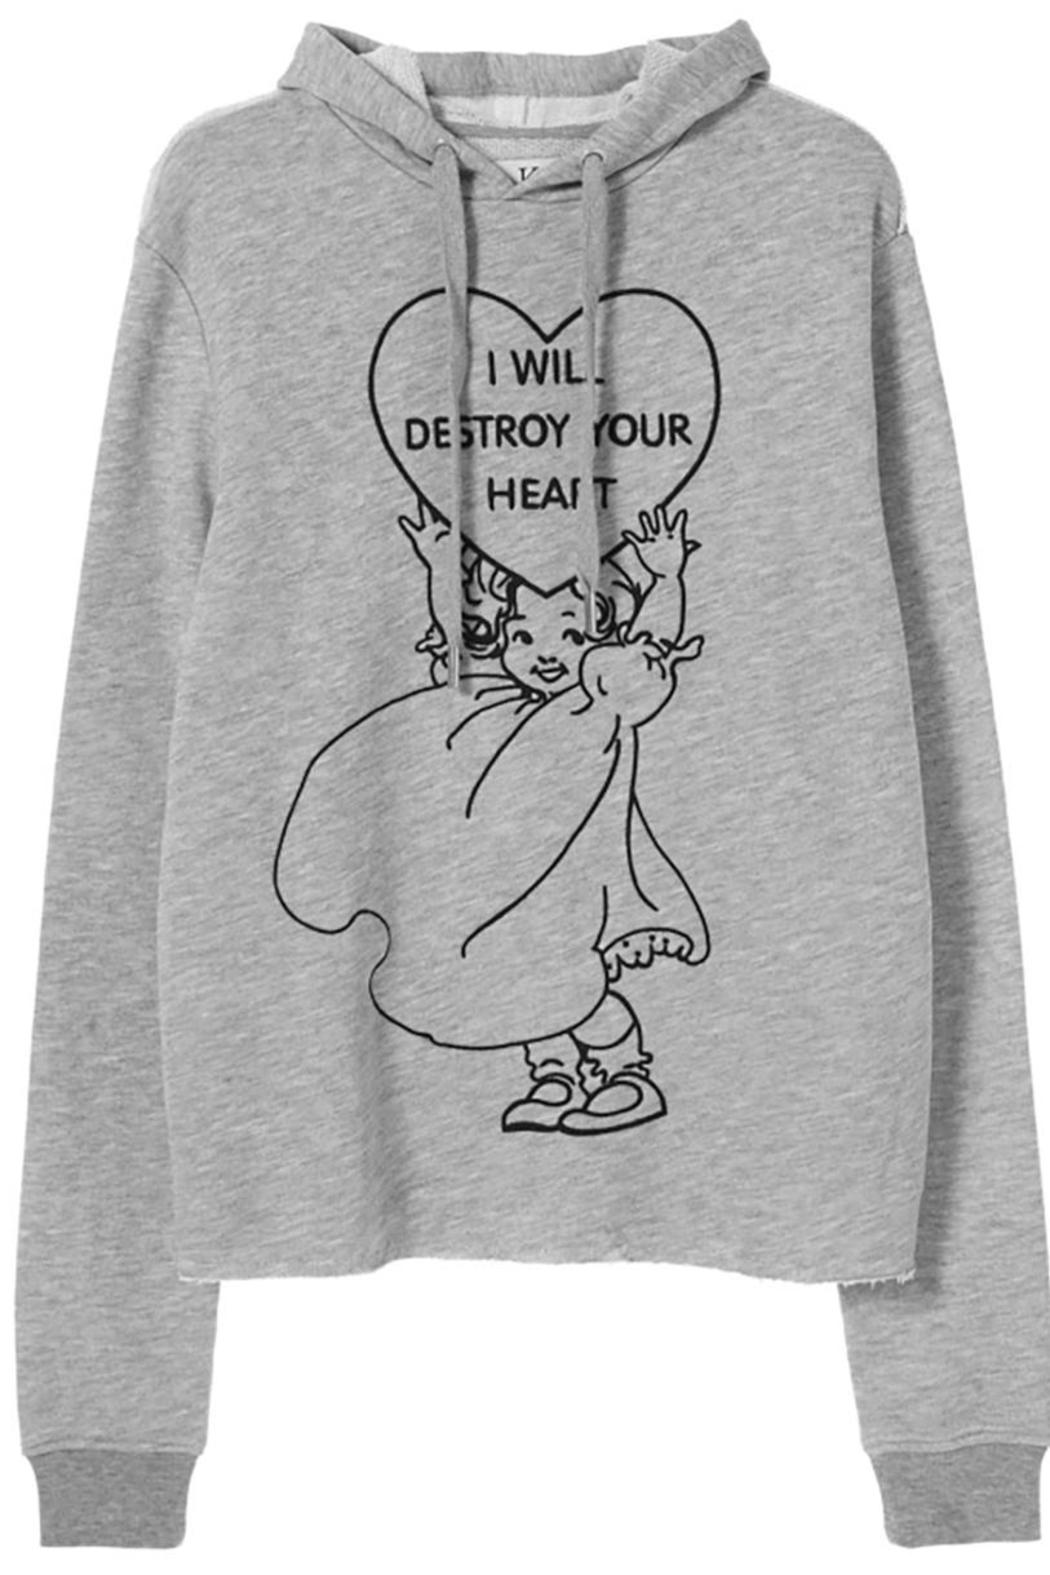 Zoe Karssen Destroy Your Heart Hoodie from Florida by LoveRich ... 536773b65